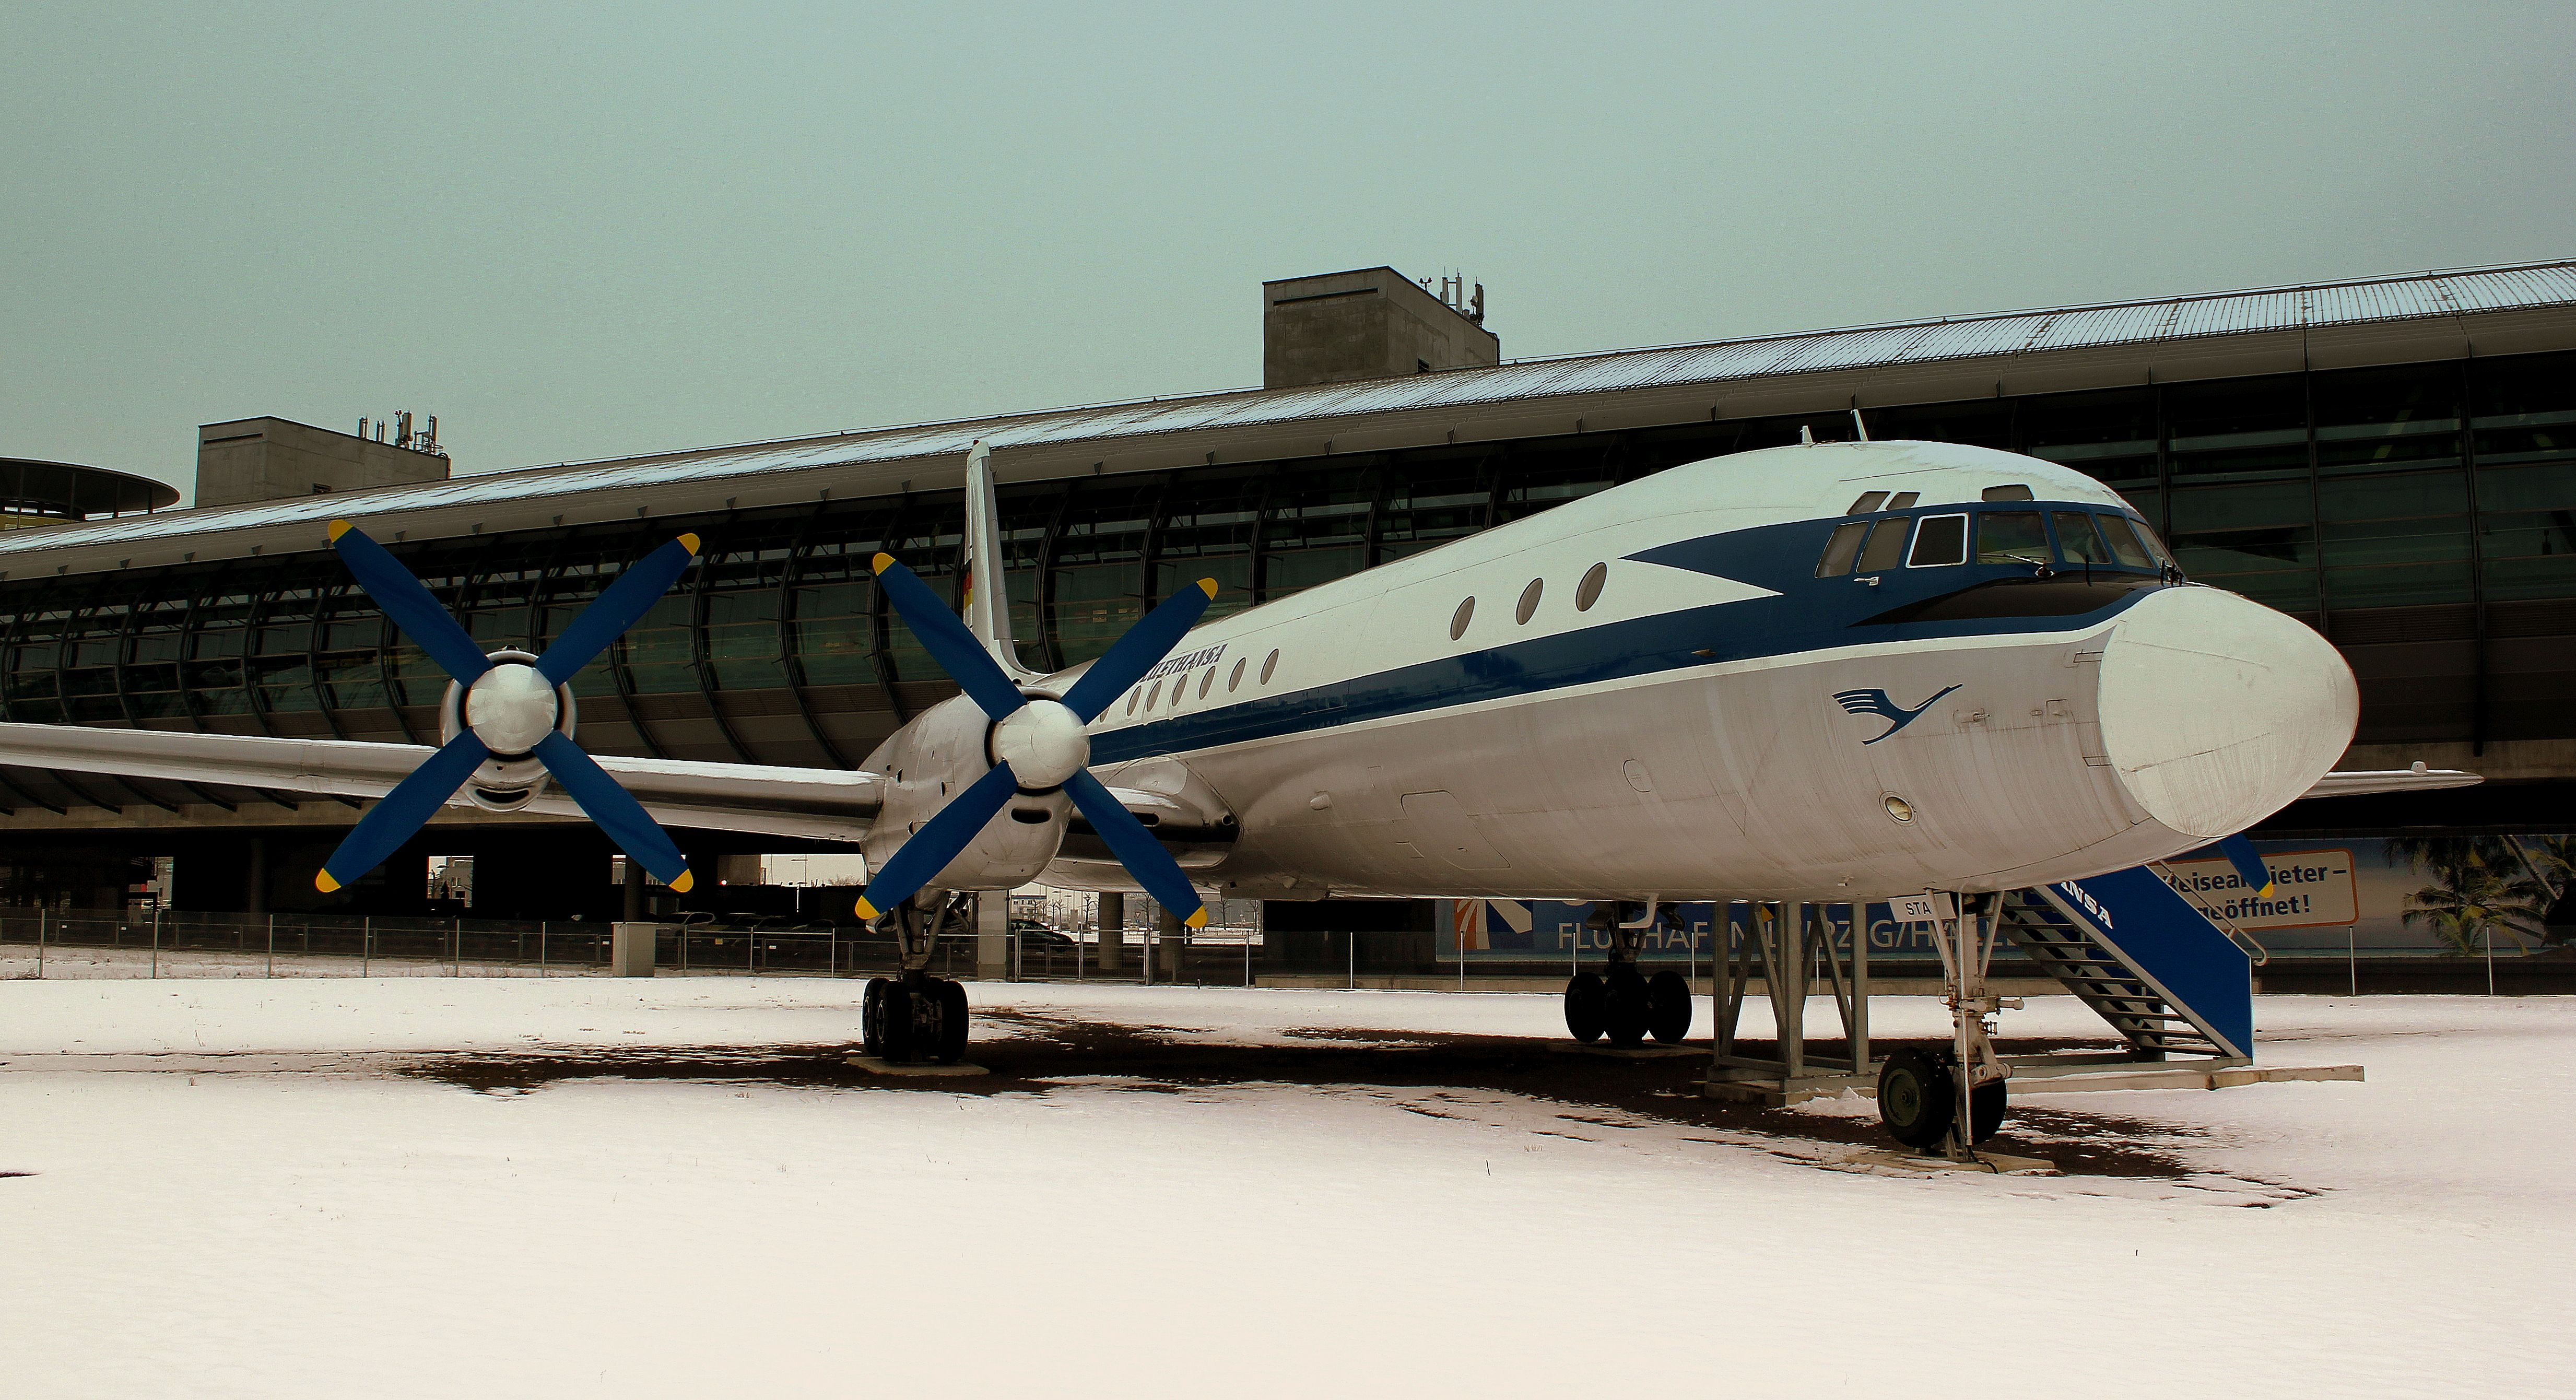 Snow on the runway at Leipzig Halle Airport